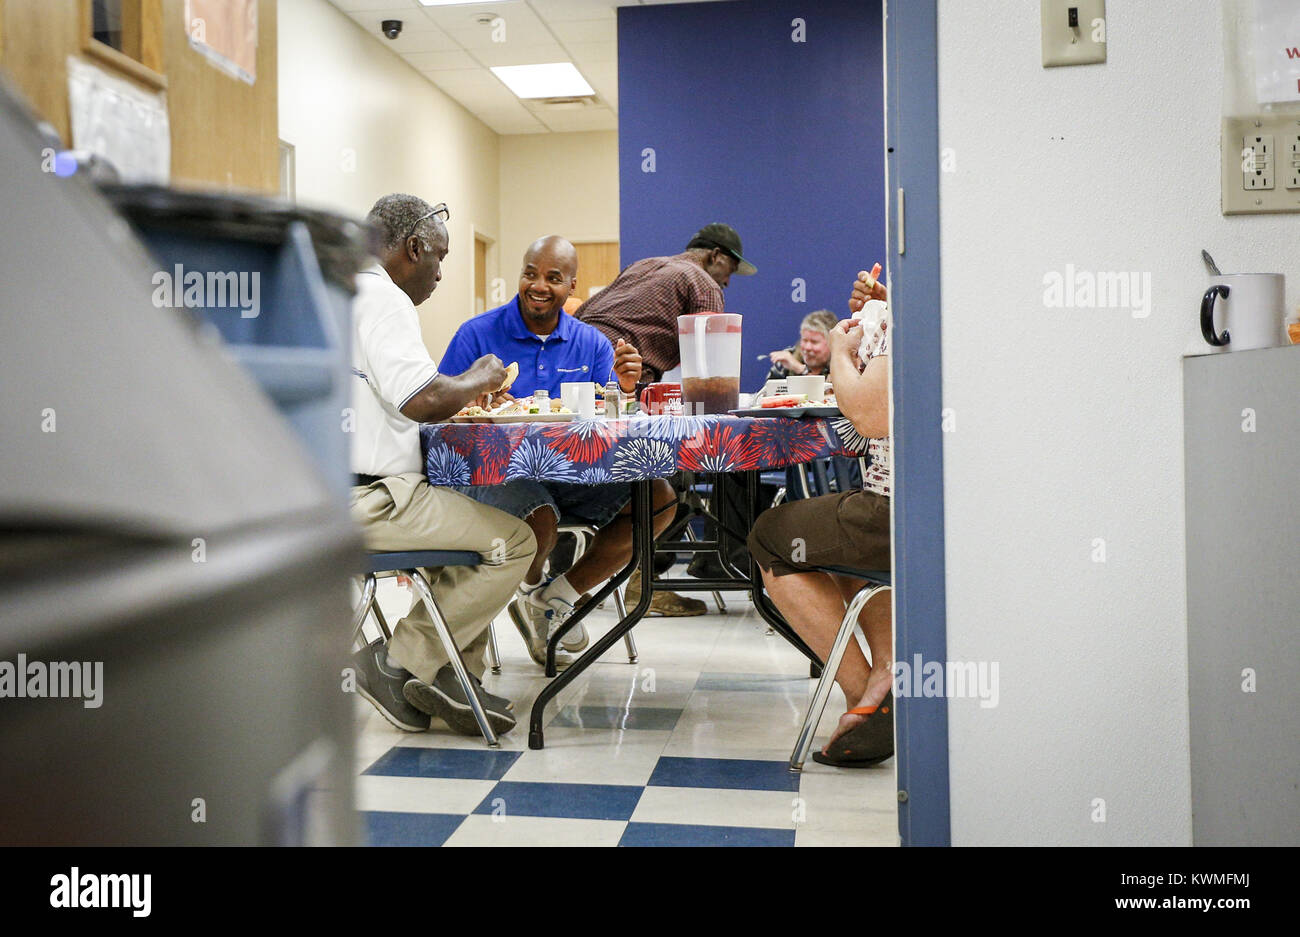 August 5, 2016 - Davenport, Iowa, U.S. - LeShawn Townsend sits down for lunch with other residents and staff at - Stock Image